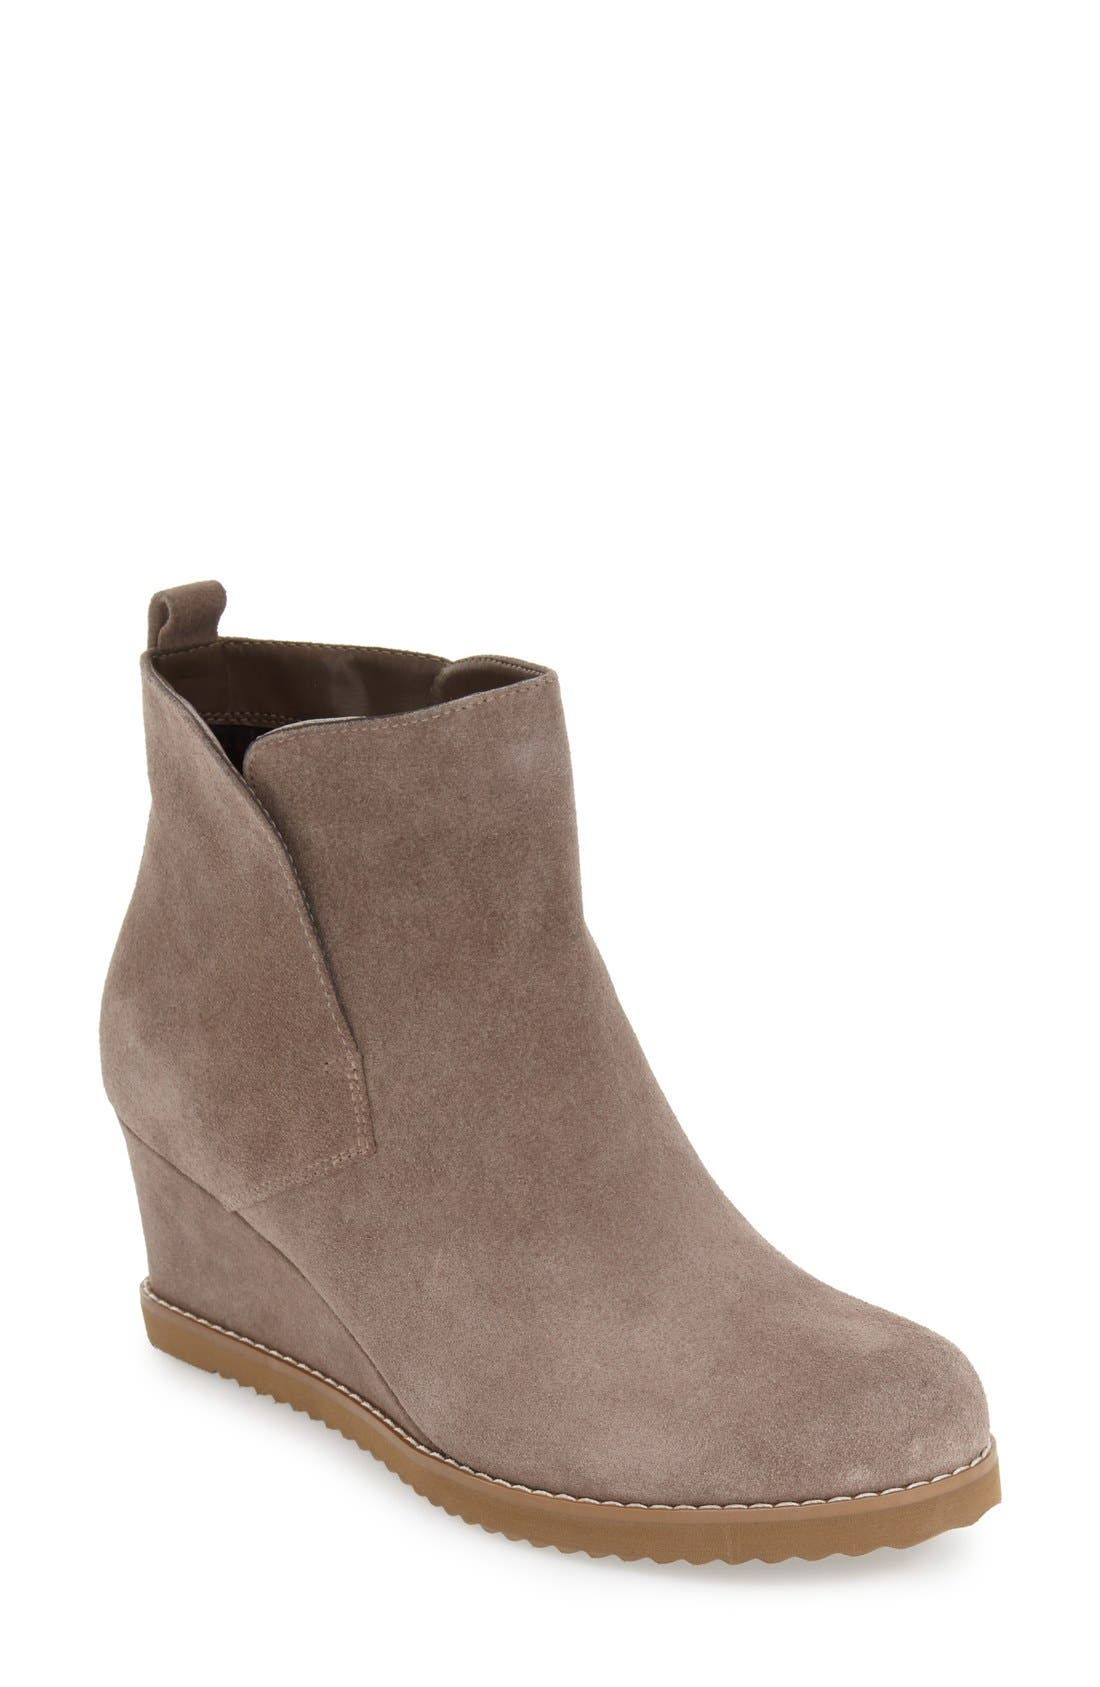 Main Image - Blondo 'Karla' Waterproof Wedge Bootie (Women)